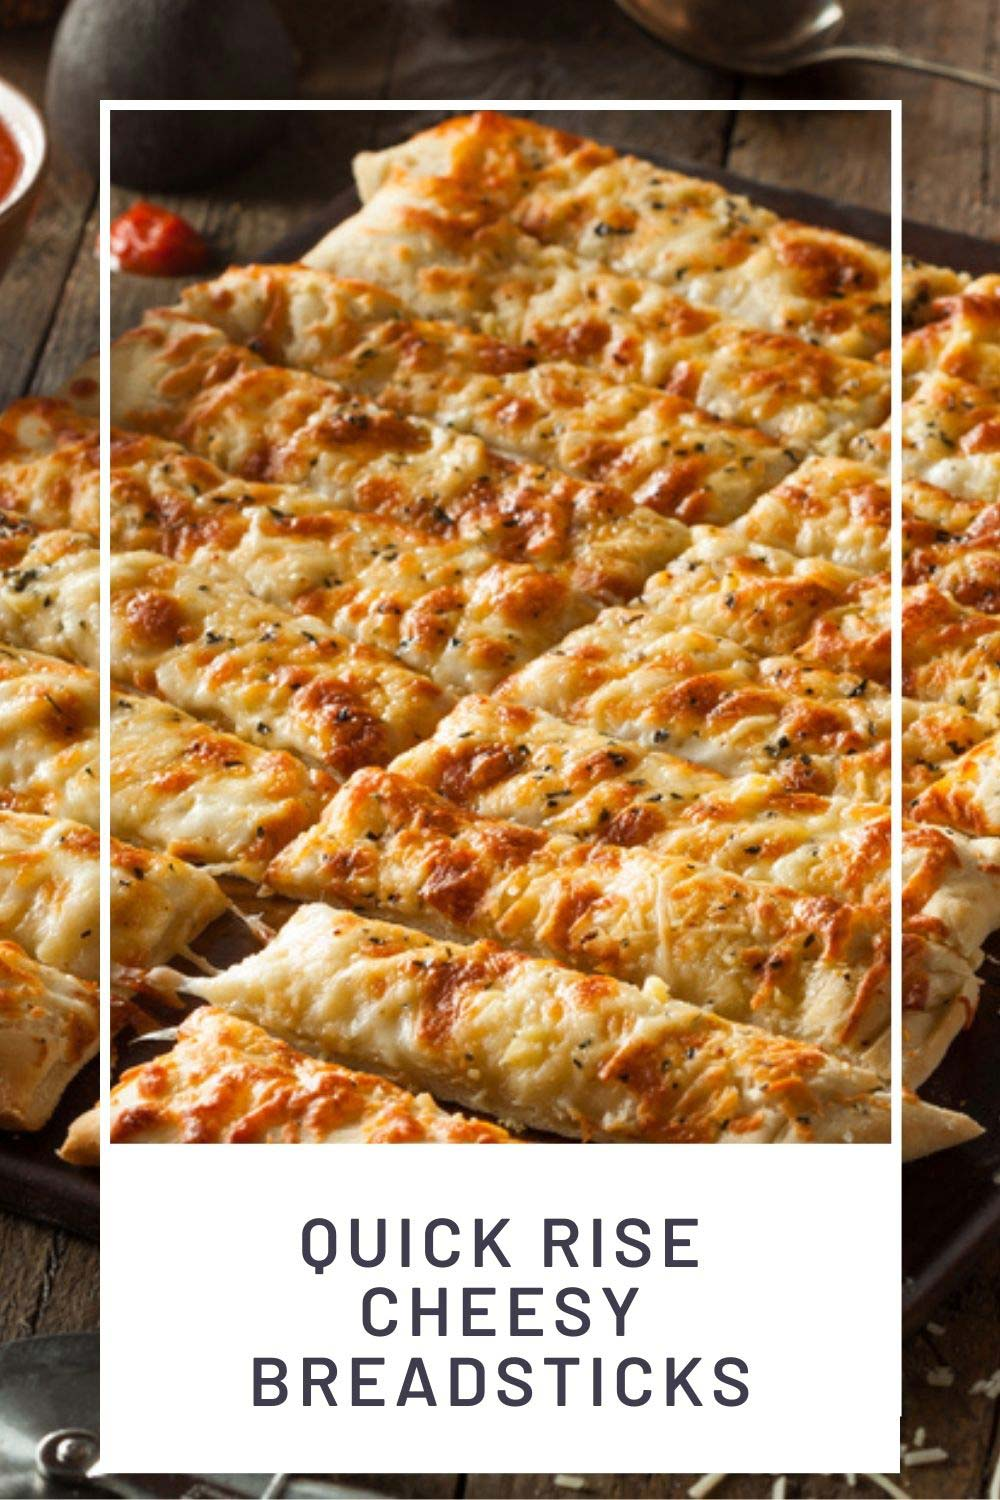 Quick Rise Cheesy Breadsticks